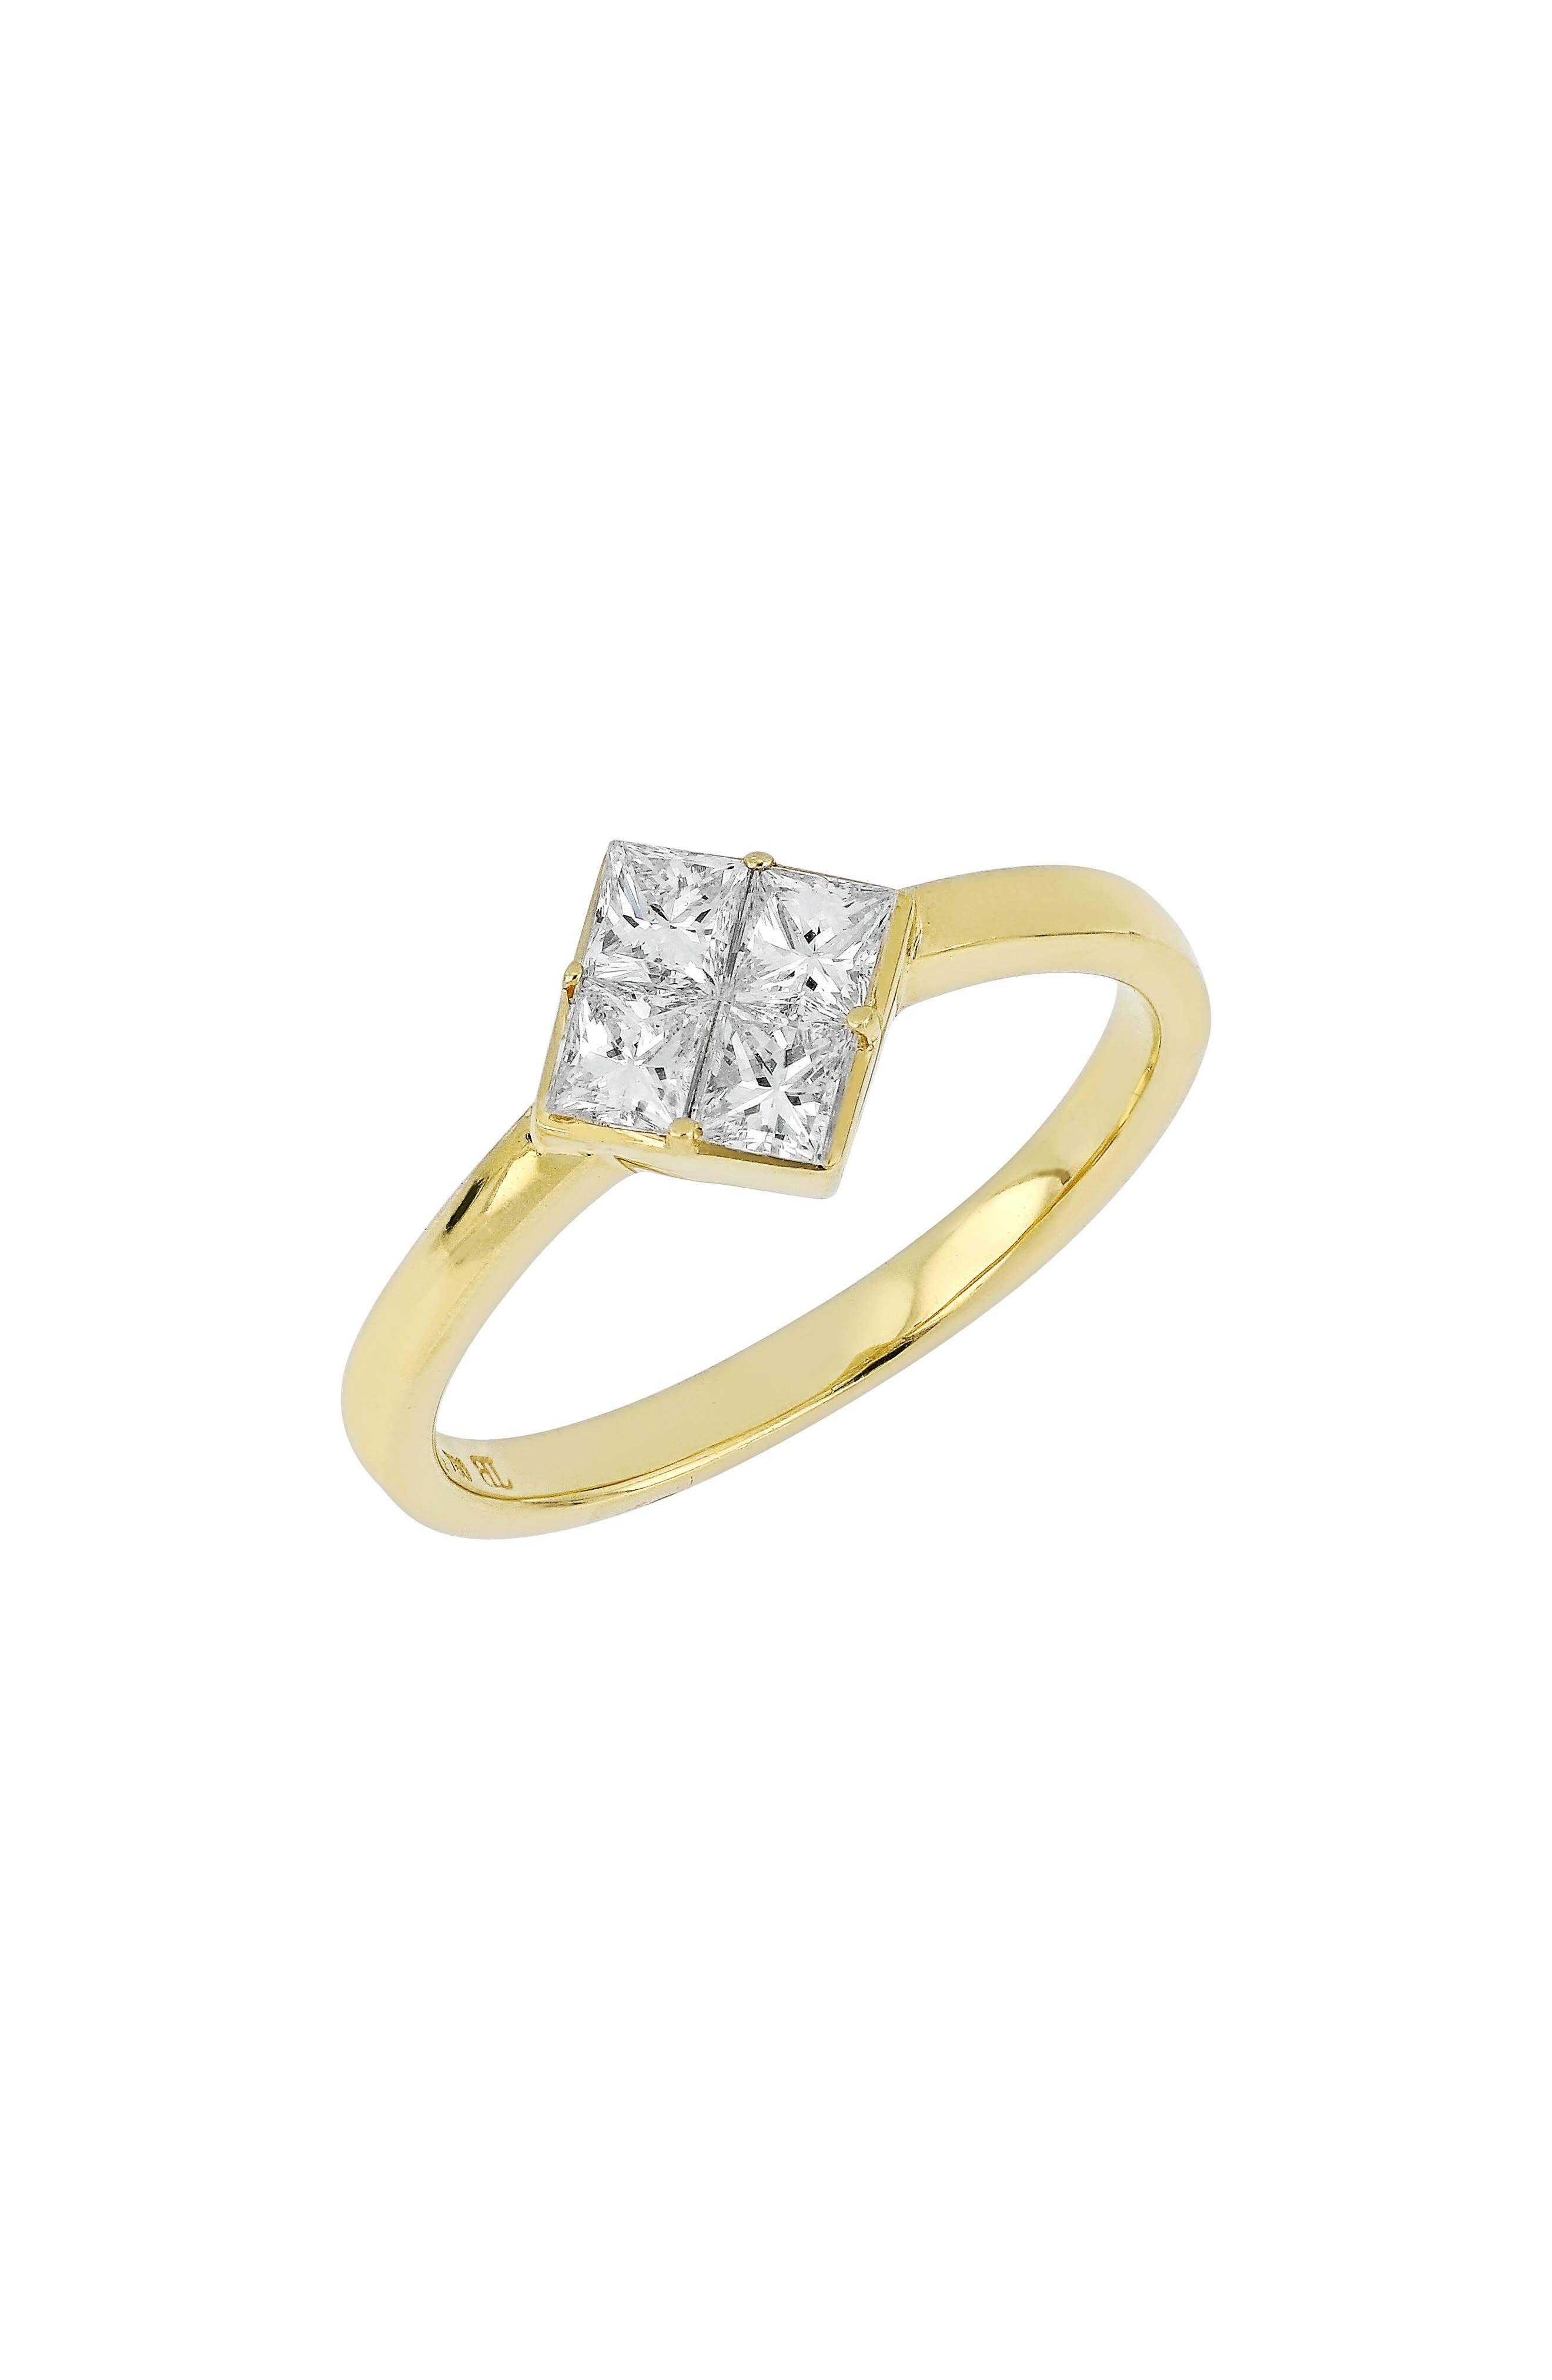 Diamond Cluster Ring,                         Main,                         color, YELLOW GOLD